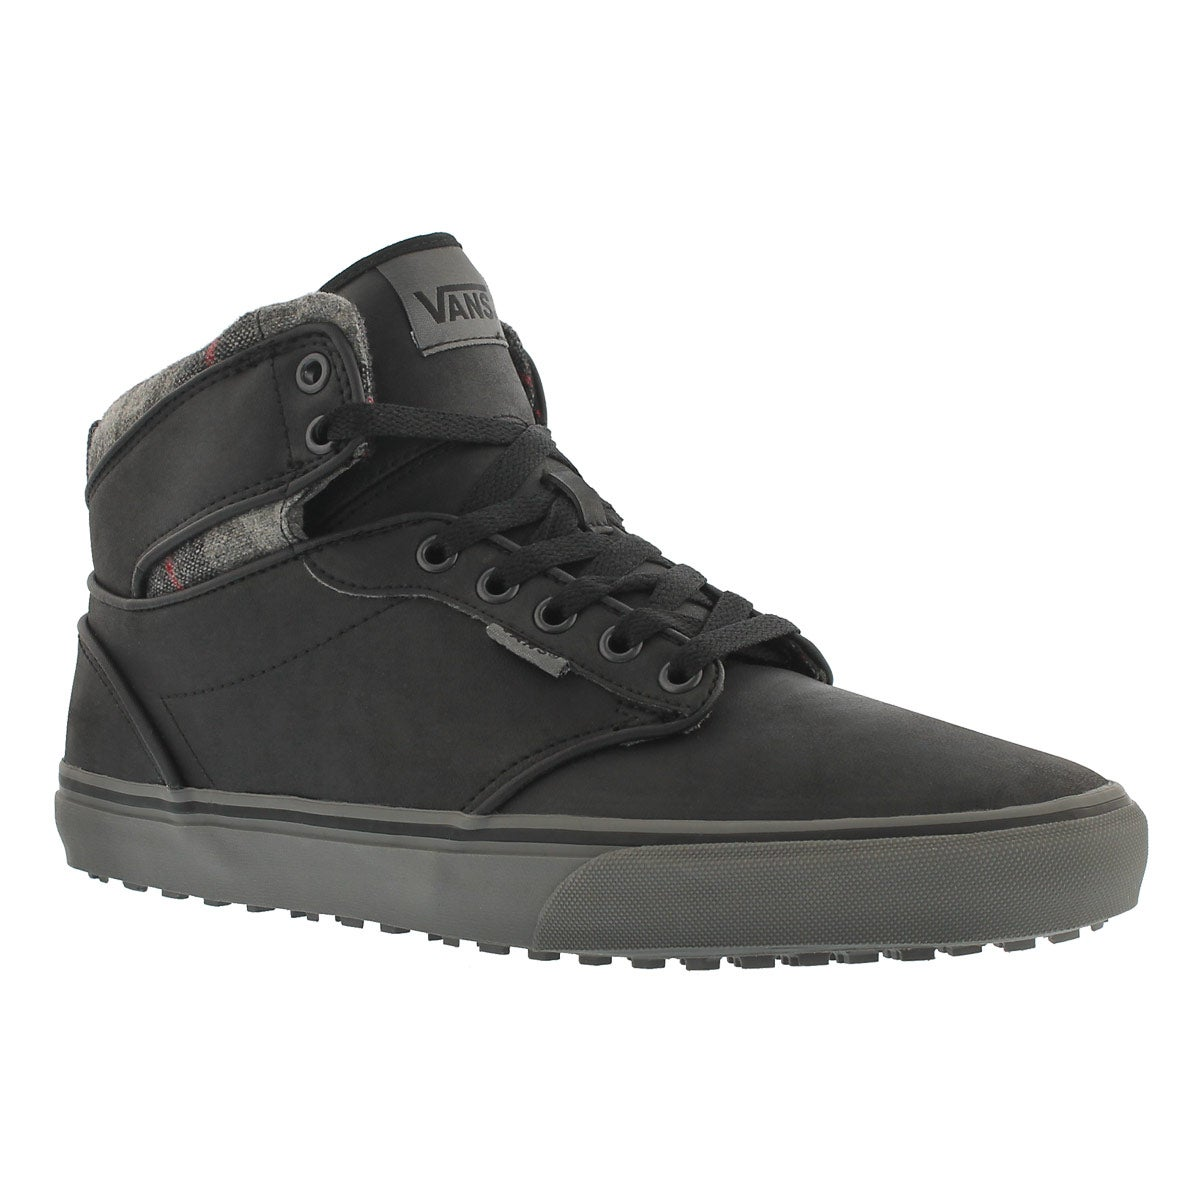 Men's ATWOOD HI MTE leather blk lace up sneakers